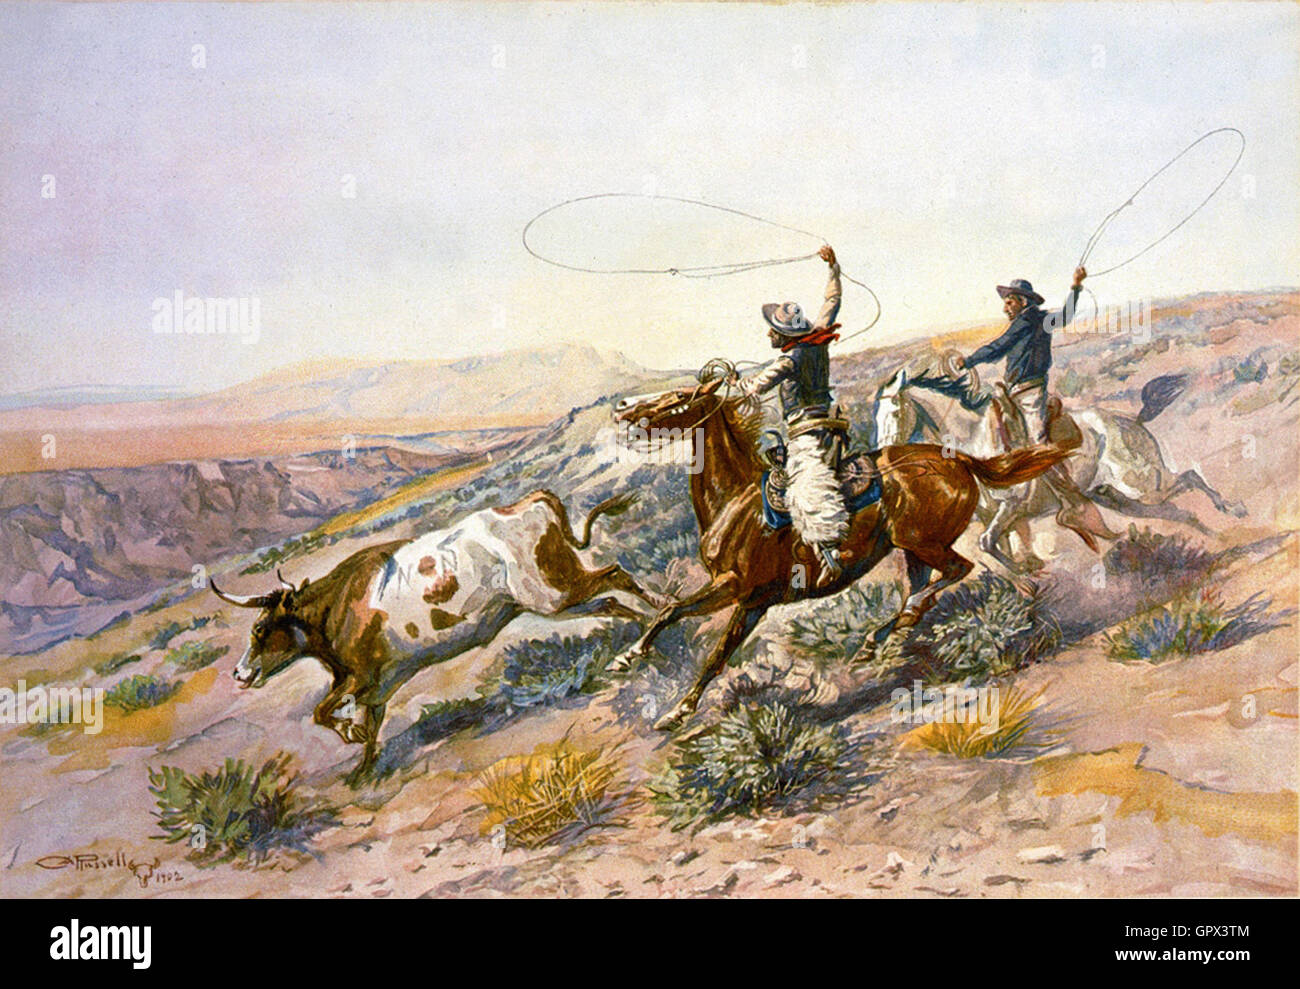 Charles Marion Russell - Buccaroos (1902) - Stock Image